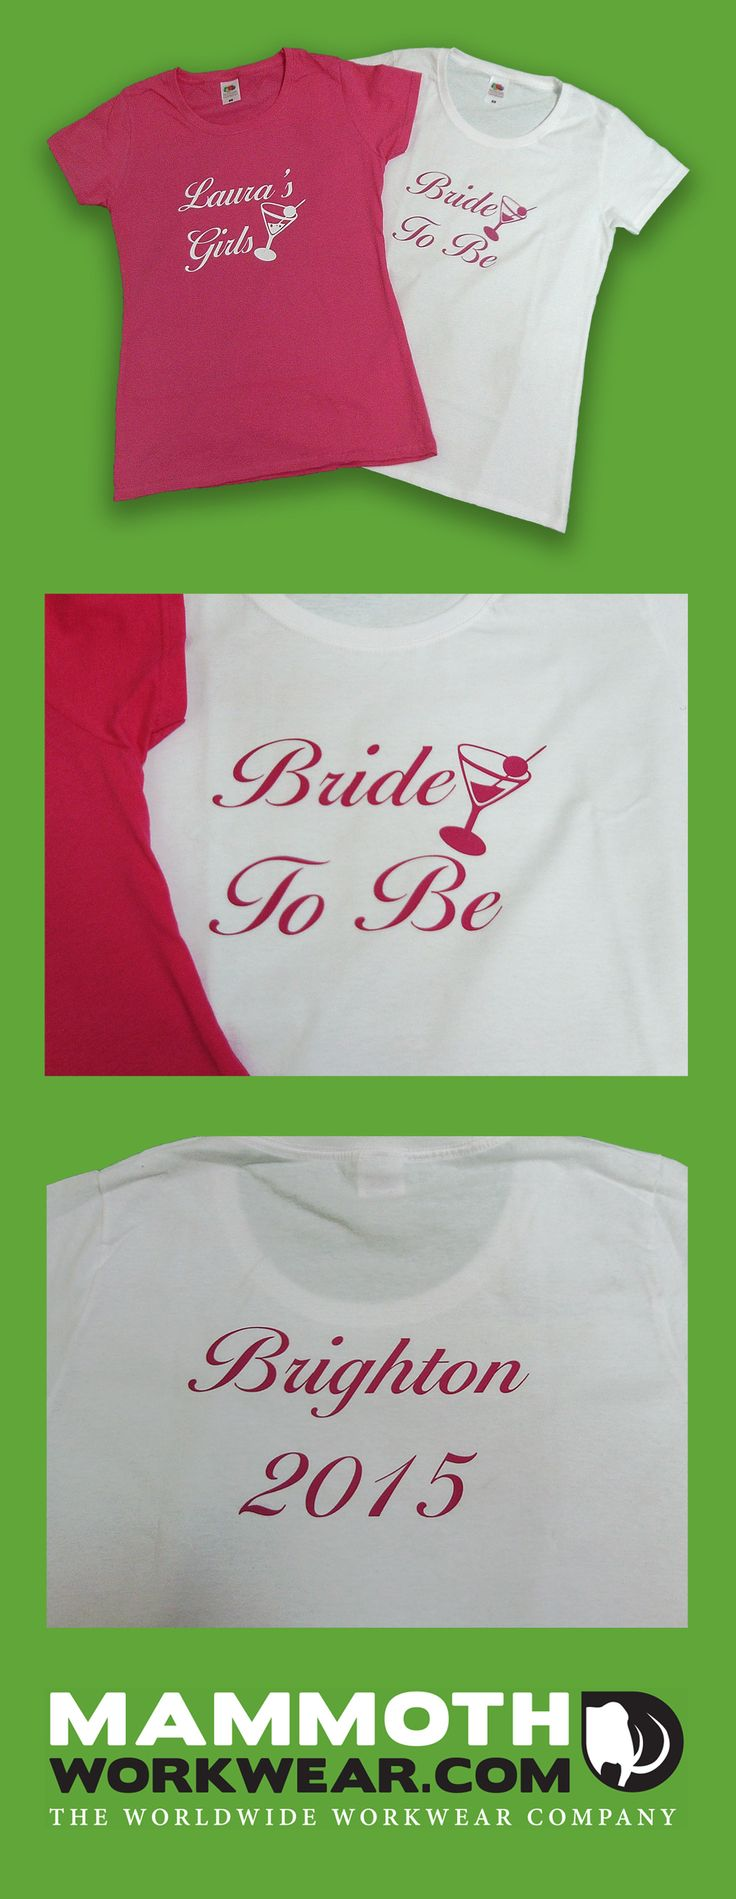 We don't just do printing for workwear. Have you ever considered personalised T-shirts for that special event, party or holiday? It's a simple but effective way of adding a bit of extra fun!